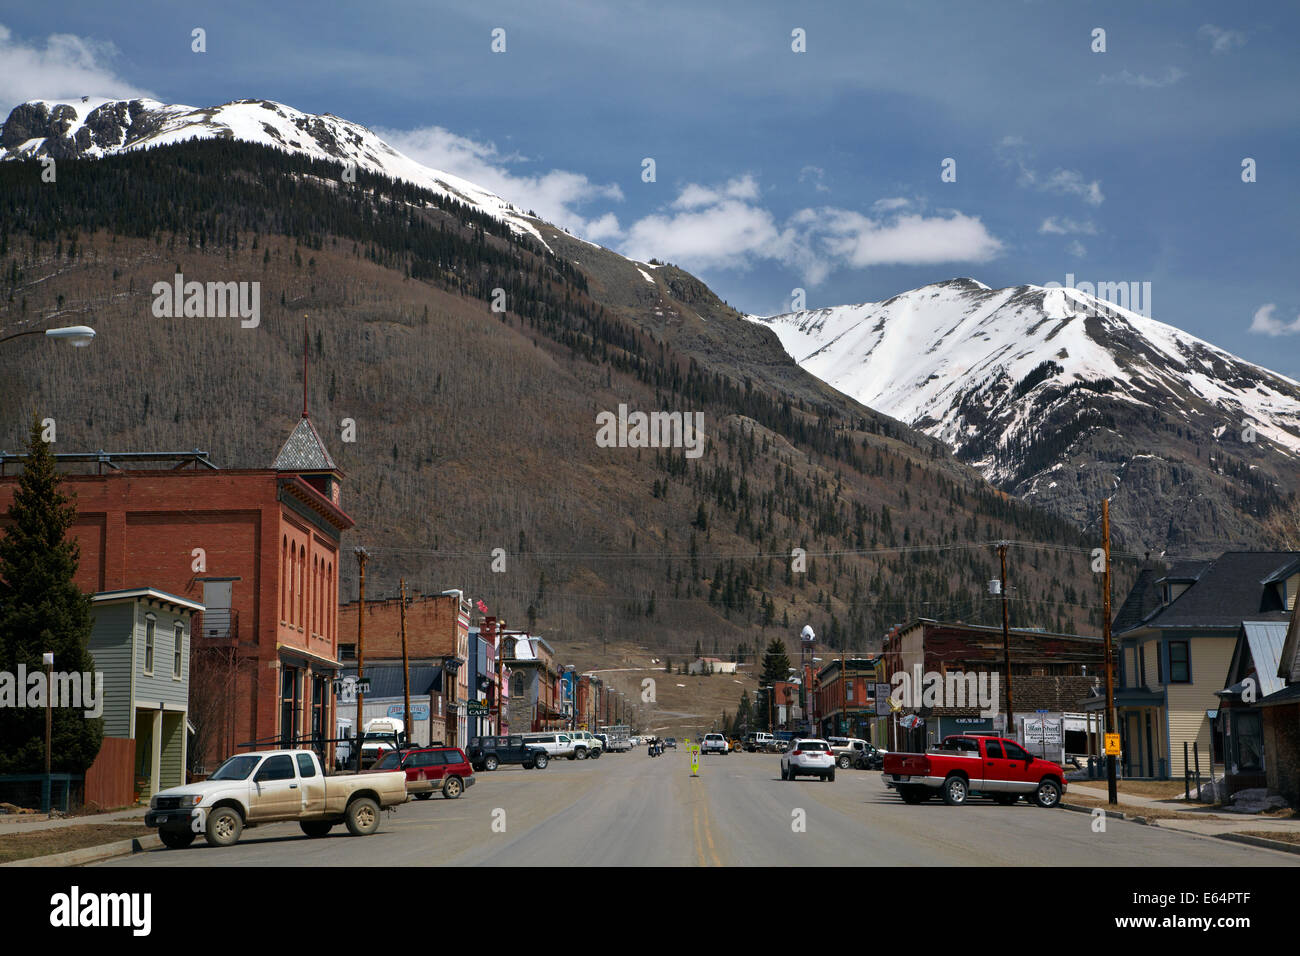 The historic mining town of Silverton, at an altitude of 9,305 ft / 2,836 m, in the San Juan Mountains, Colorado, - Stock Image